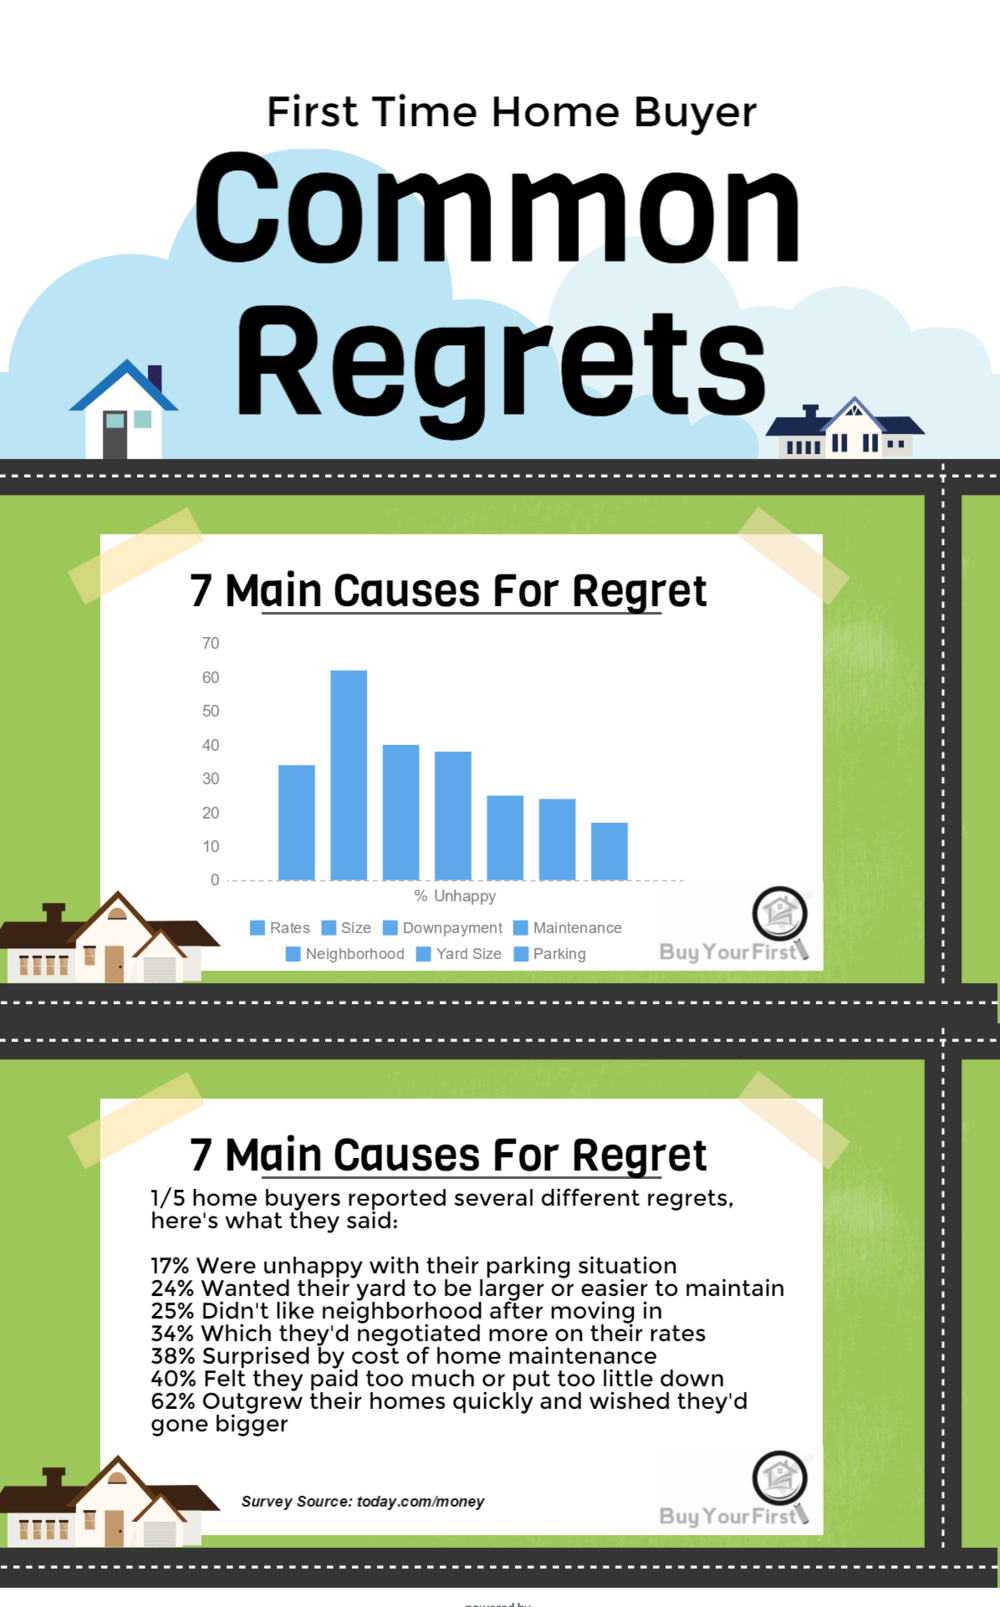 http://buyyourfirst.com/wp-content/uploads/2015/07/common-first-time-buyer-regrets-1.png